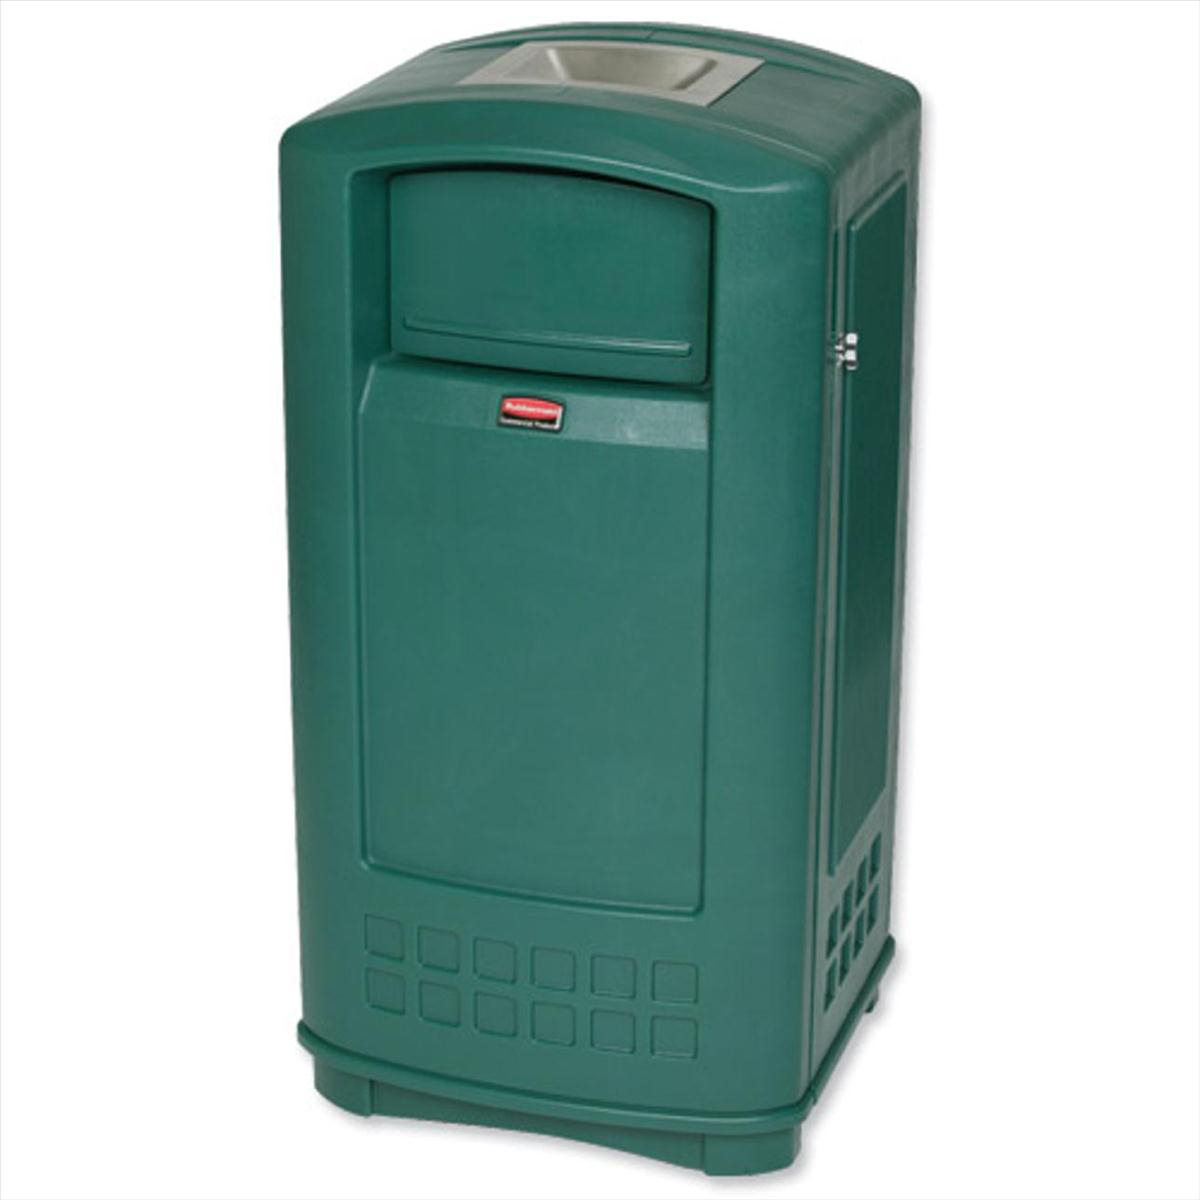 Rubbermaid Landmark Bin Durable Plastic with Ashtray Spring-loaded Doors 189.1 Litre Green Ref 3965-58